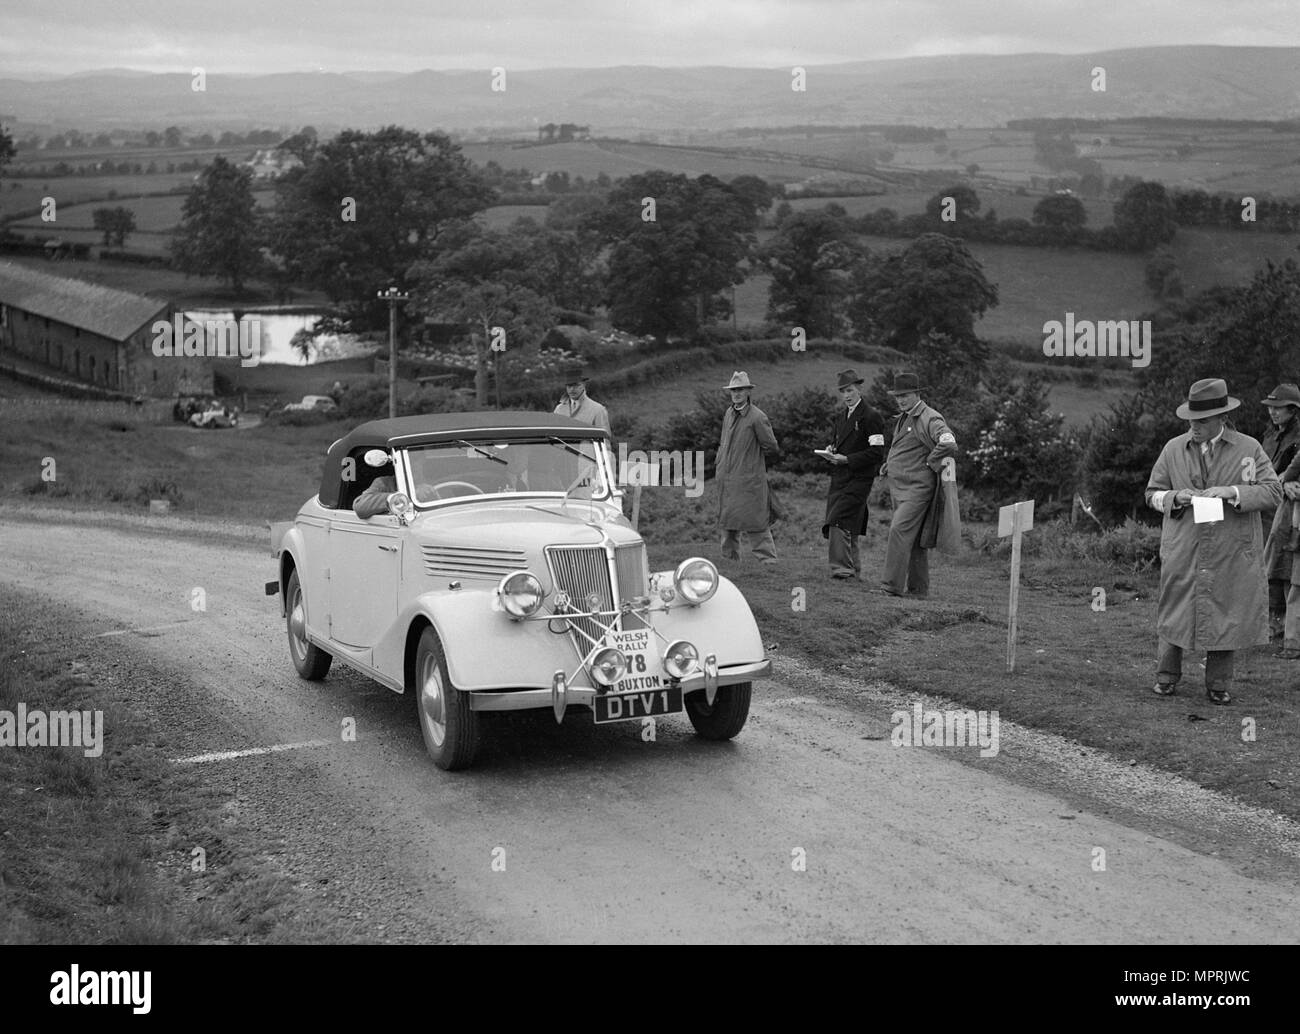 Renault Primaquatre of HC Brownlow competing in the South Wales Auto Club Welsh Rally, 1937 Artist: Bill Brunell. - Stock Image